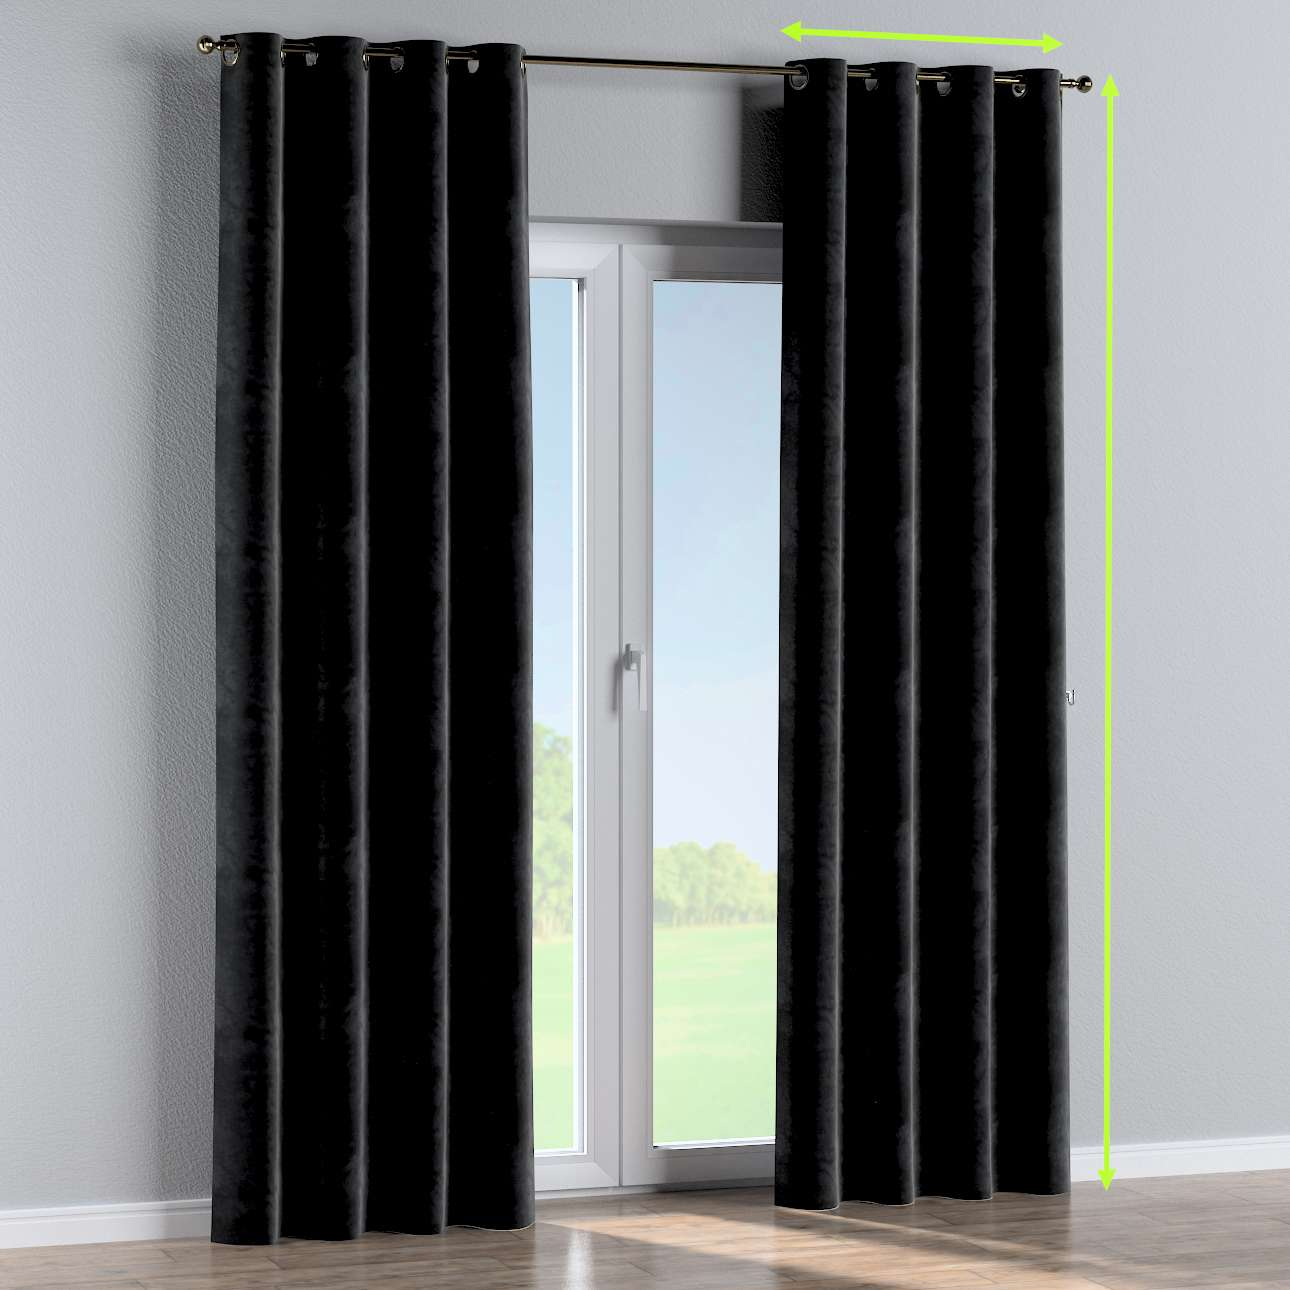 Eyelet curtains in collection Velvet, fabric: 704-17